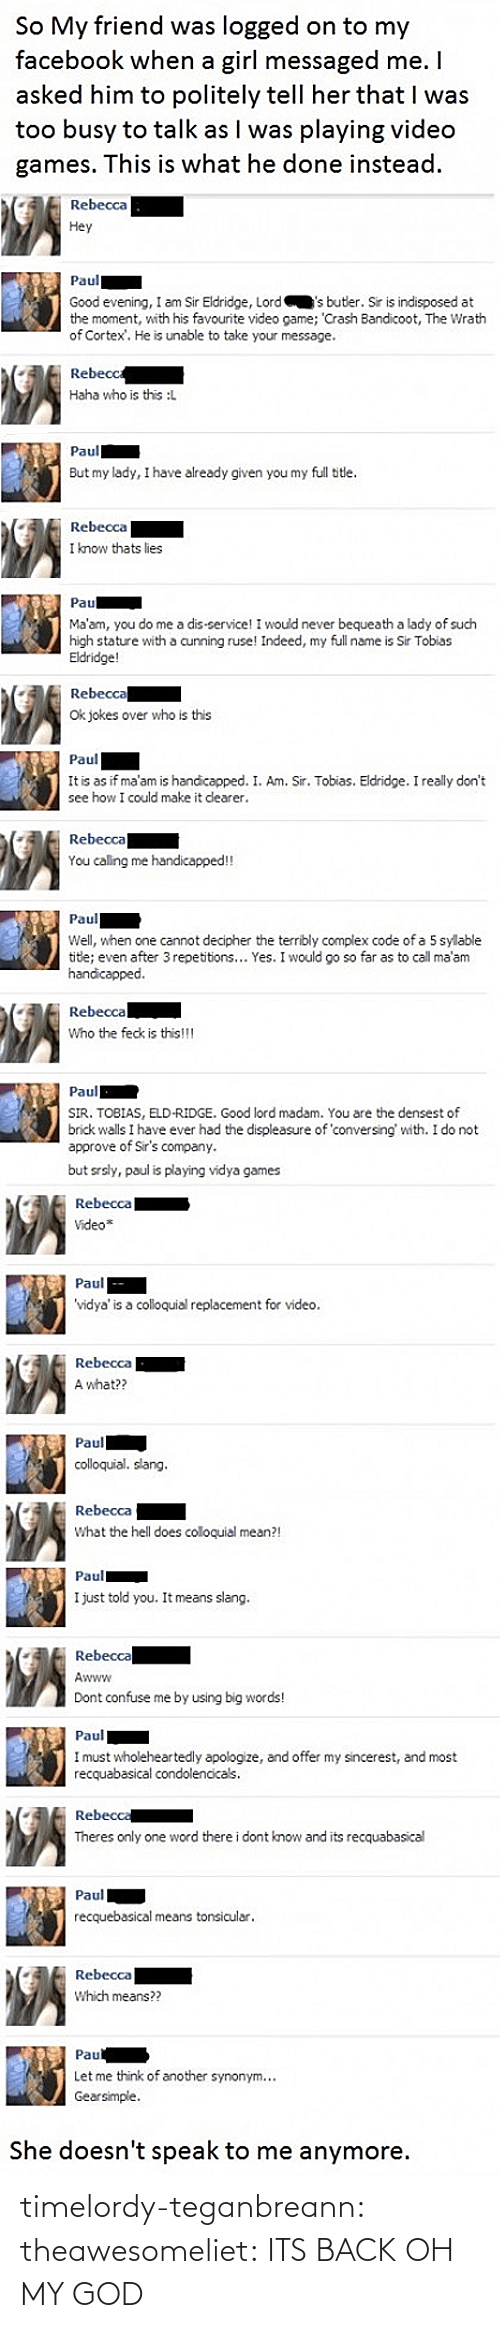 I Do Not Approve: So My friend was logged on to my  facebook when a girl messaged me.I  asked him to politely tell her that I was  too busy to talk as l was playing video  games. This is what he done instead.  Rebecca  Hey  Paul  Good evening, I am Sir Eldridge, Lord'sbutler. Sir is indisposed at  the moment, with his favourite video game; 'Crash Bandicoot, The Wrath  of Cortex. He is unable to take your message.  Rebecc  Haha who is this :L  Paul  But my lady, I have already given you my full ttle.  Rebecca  I know thats lies  Pau  Ma'am, you do me a dis-service! I would never bequeath a lady of such  igh stature with a cunning ruse! Indeed, my full name is Sir Tobias  Eldridge  Rebecca  Ok jokes over who is this   Paul  It is as if ma'am is handcapped. I. Am. Sir. Tobias. Eldridge. I really don't  see how I could make it dearer.  Rebecca  You caling me handicapped!!  Paul  Well, when one cannot decipher the terribly complex code of a 5 sylable  tide; even after 3 repetitions... Yes. I would go so far as to call ma'arm  handicapped  Rebecca  Who the feck is this!!  SIR. TOBIAS, ELD-RIDGE. Good lord madam. You are the densest of  brick walls I have ever had the displeasure of conversing with. I do not  approve of Sir's company.  but srsly, paul is playing vidya games  Rebecca  Video*  Paul  vidya' is a colloquial replacement for video  Rebecca  A what??  Paul  colloquial, sang   Rebecca  What the hell does coloquial mean?!  I just told you. It means slang.  Rebecca  Awww  Dont confuse me by using big words!  Paul  must wholeheartedly apologize, and offer my sincerest, and most  recquabasical condolencicals.  Reb  Theres only one word there i dont know and its recquabasical  Paul  recquebasical means tonsicular.  Rebecca  Which means??  Pau  Let me think of another synonym..  Gearsimple  She doesn't speak to me anymore. timelordy-teganbreann:  theawesomeliet:  ITS BACK  OH MY GOD